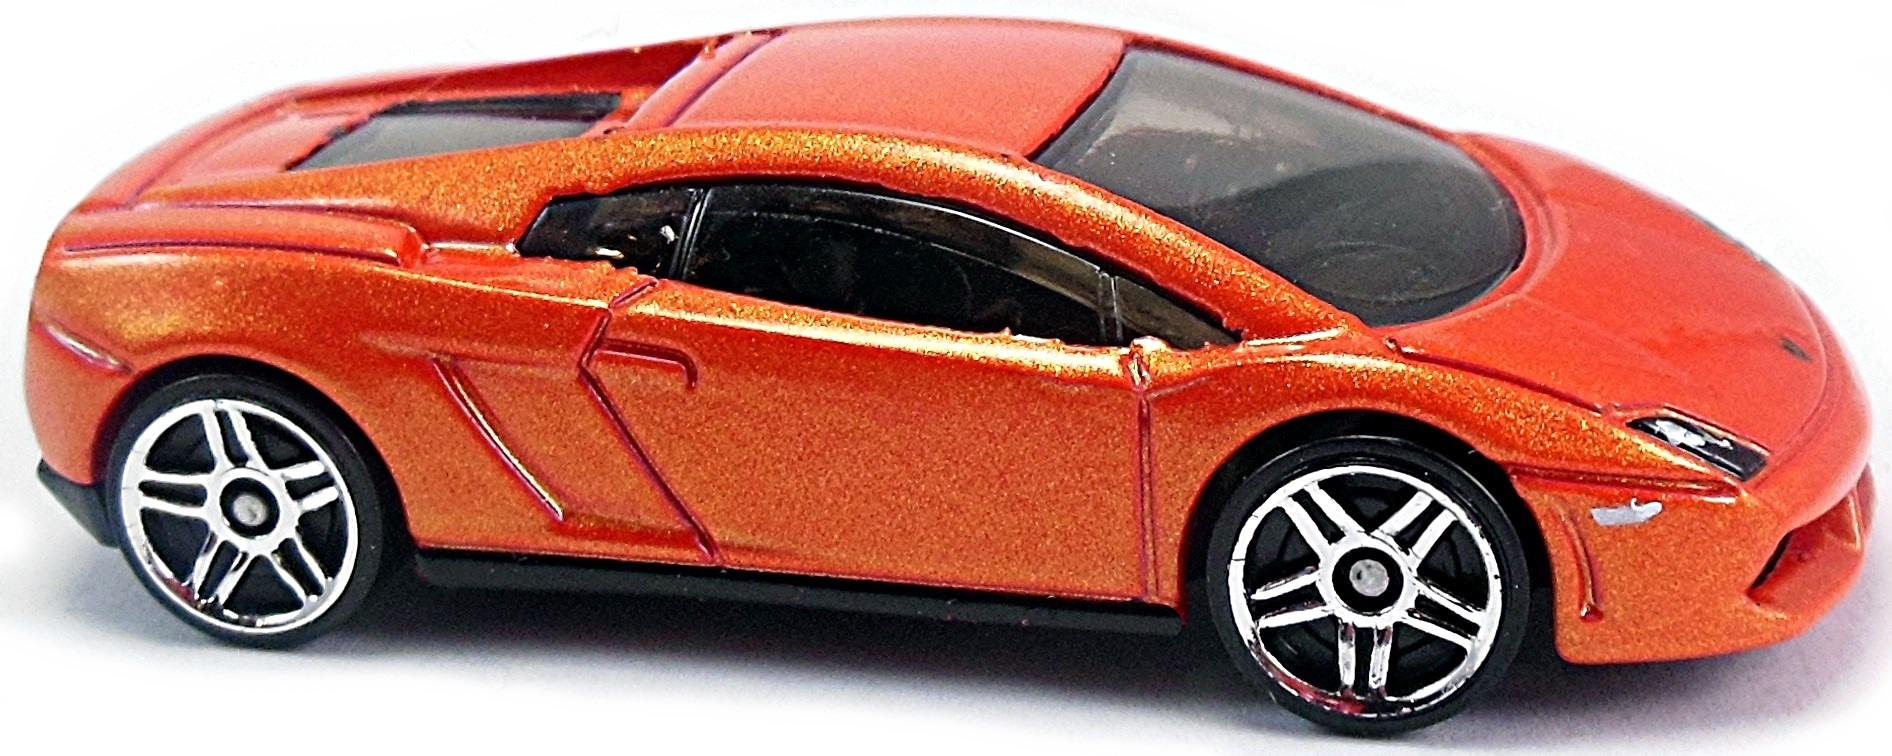 lamborghini gallardo lp 560 4 66mm 2010 hot wheels. Black Bedroom Furniture Sets. Home Design Ideas